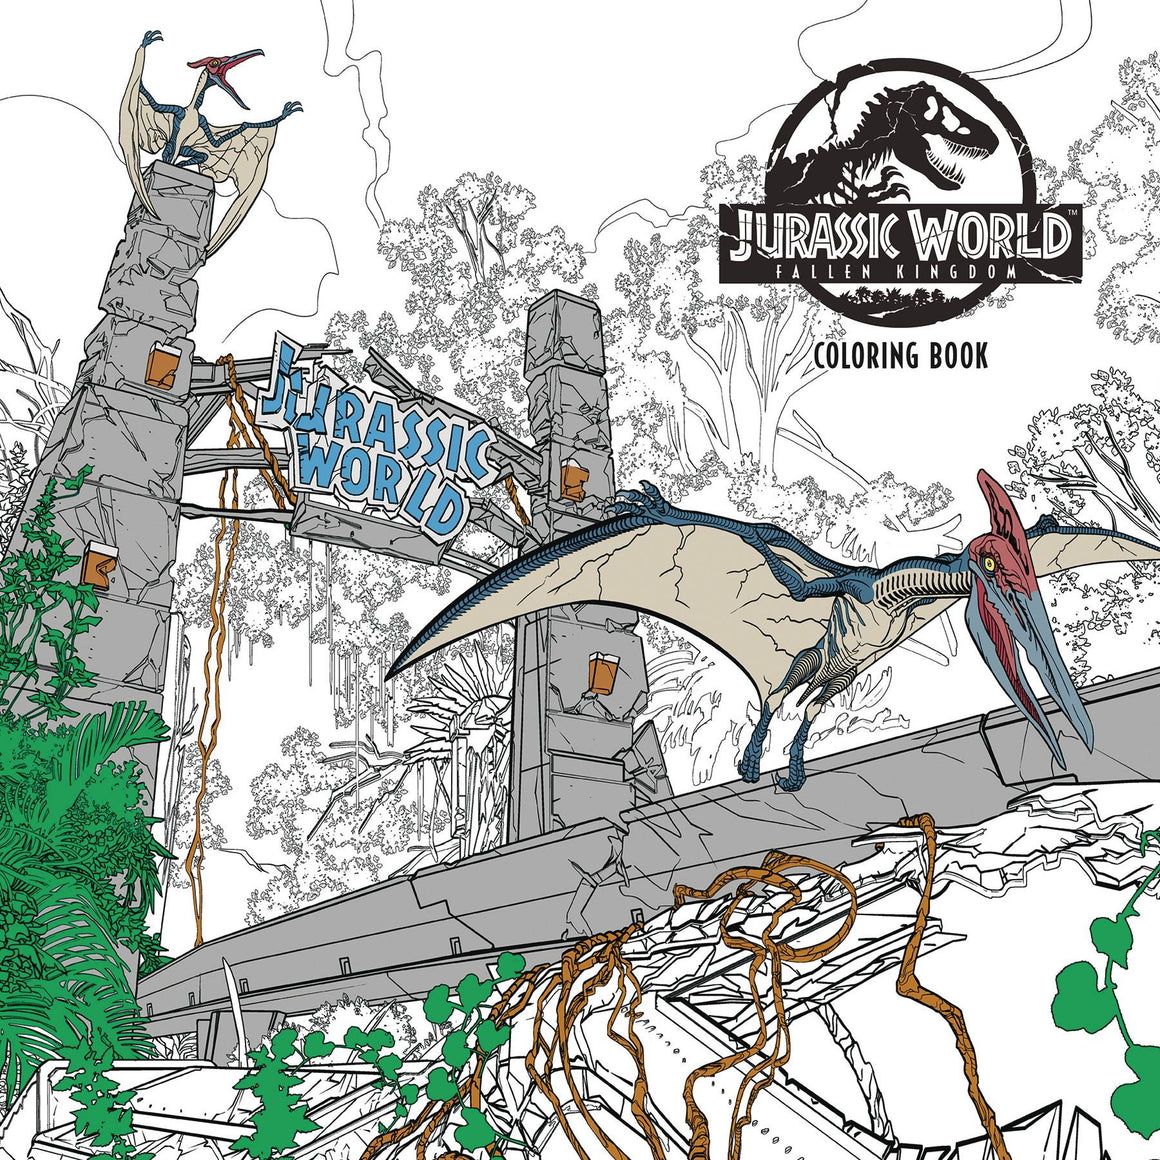 JURASSIC WORLD FALLEN KINGDOM COLORING BOOK TP